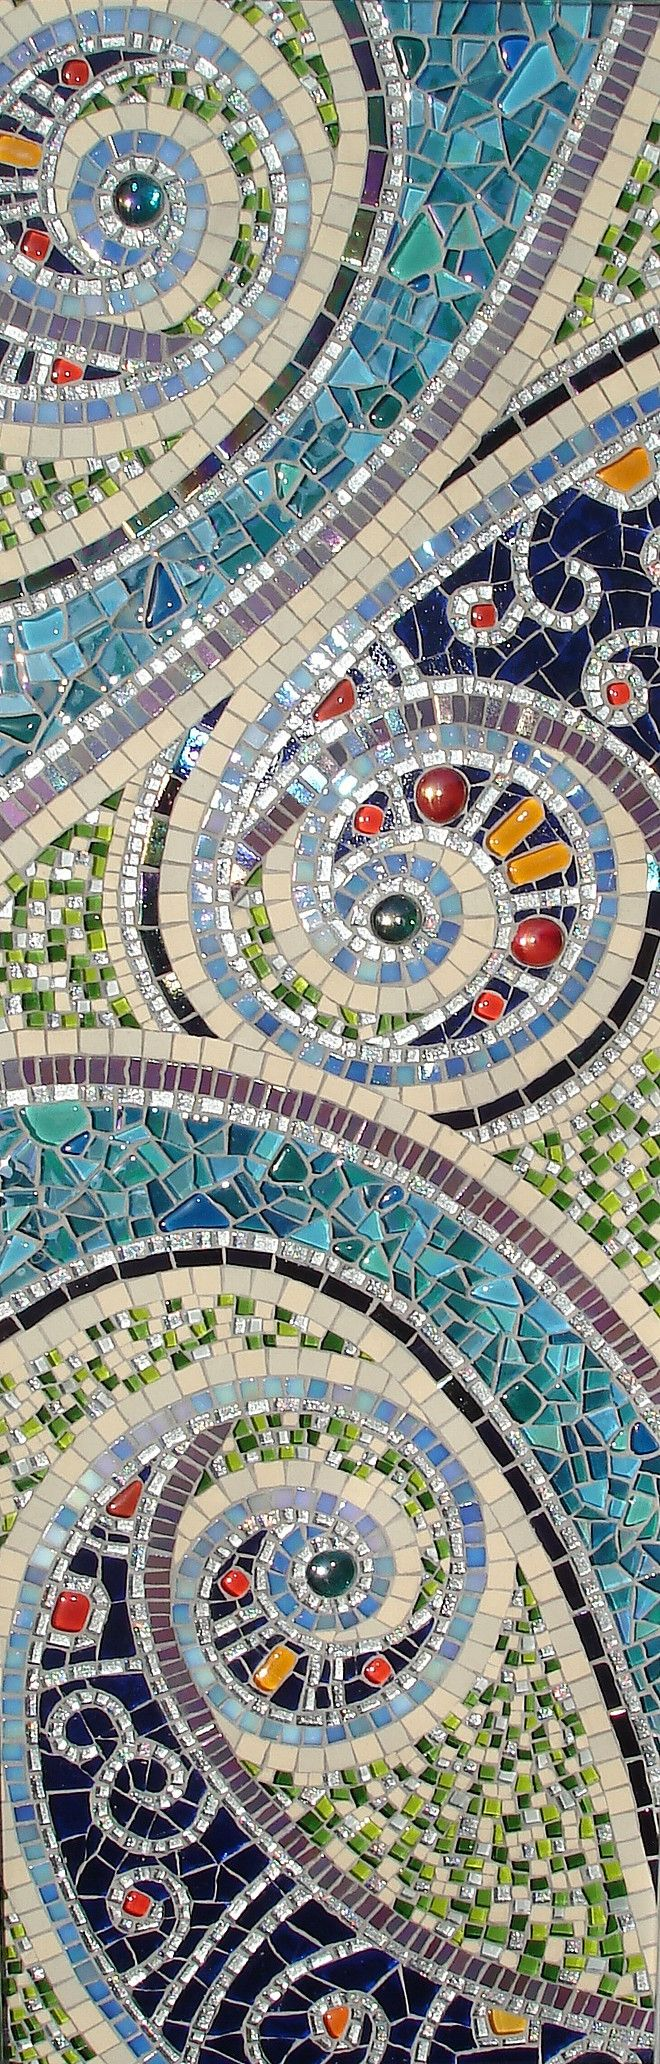 17 best images about mosaic on pinterest ceramics for Garden mosaics designs